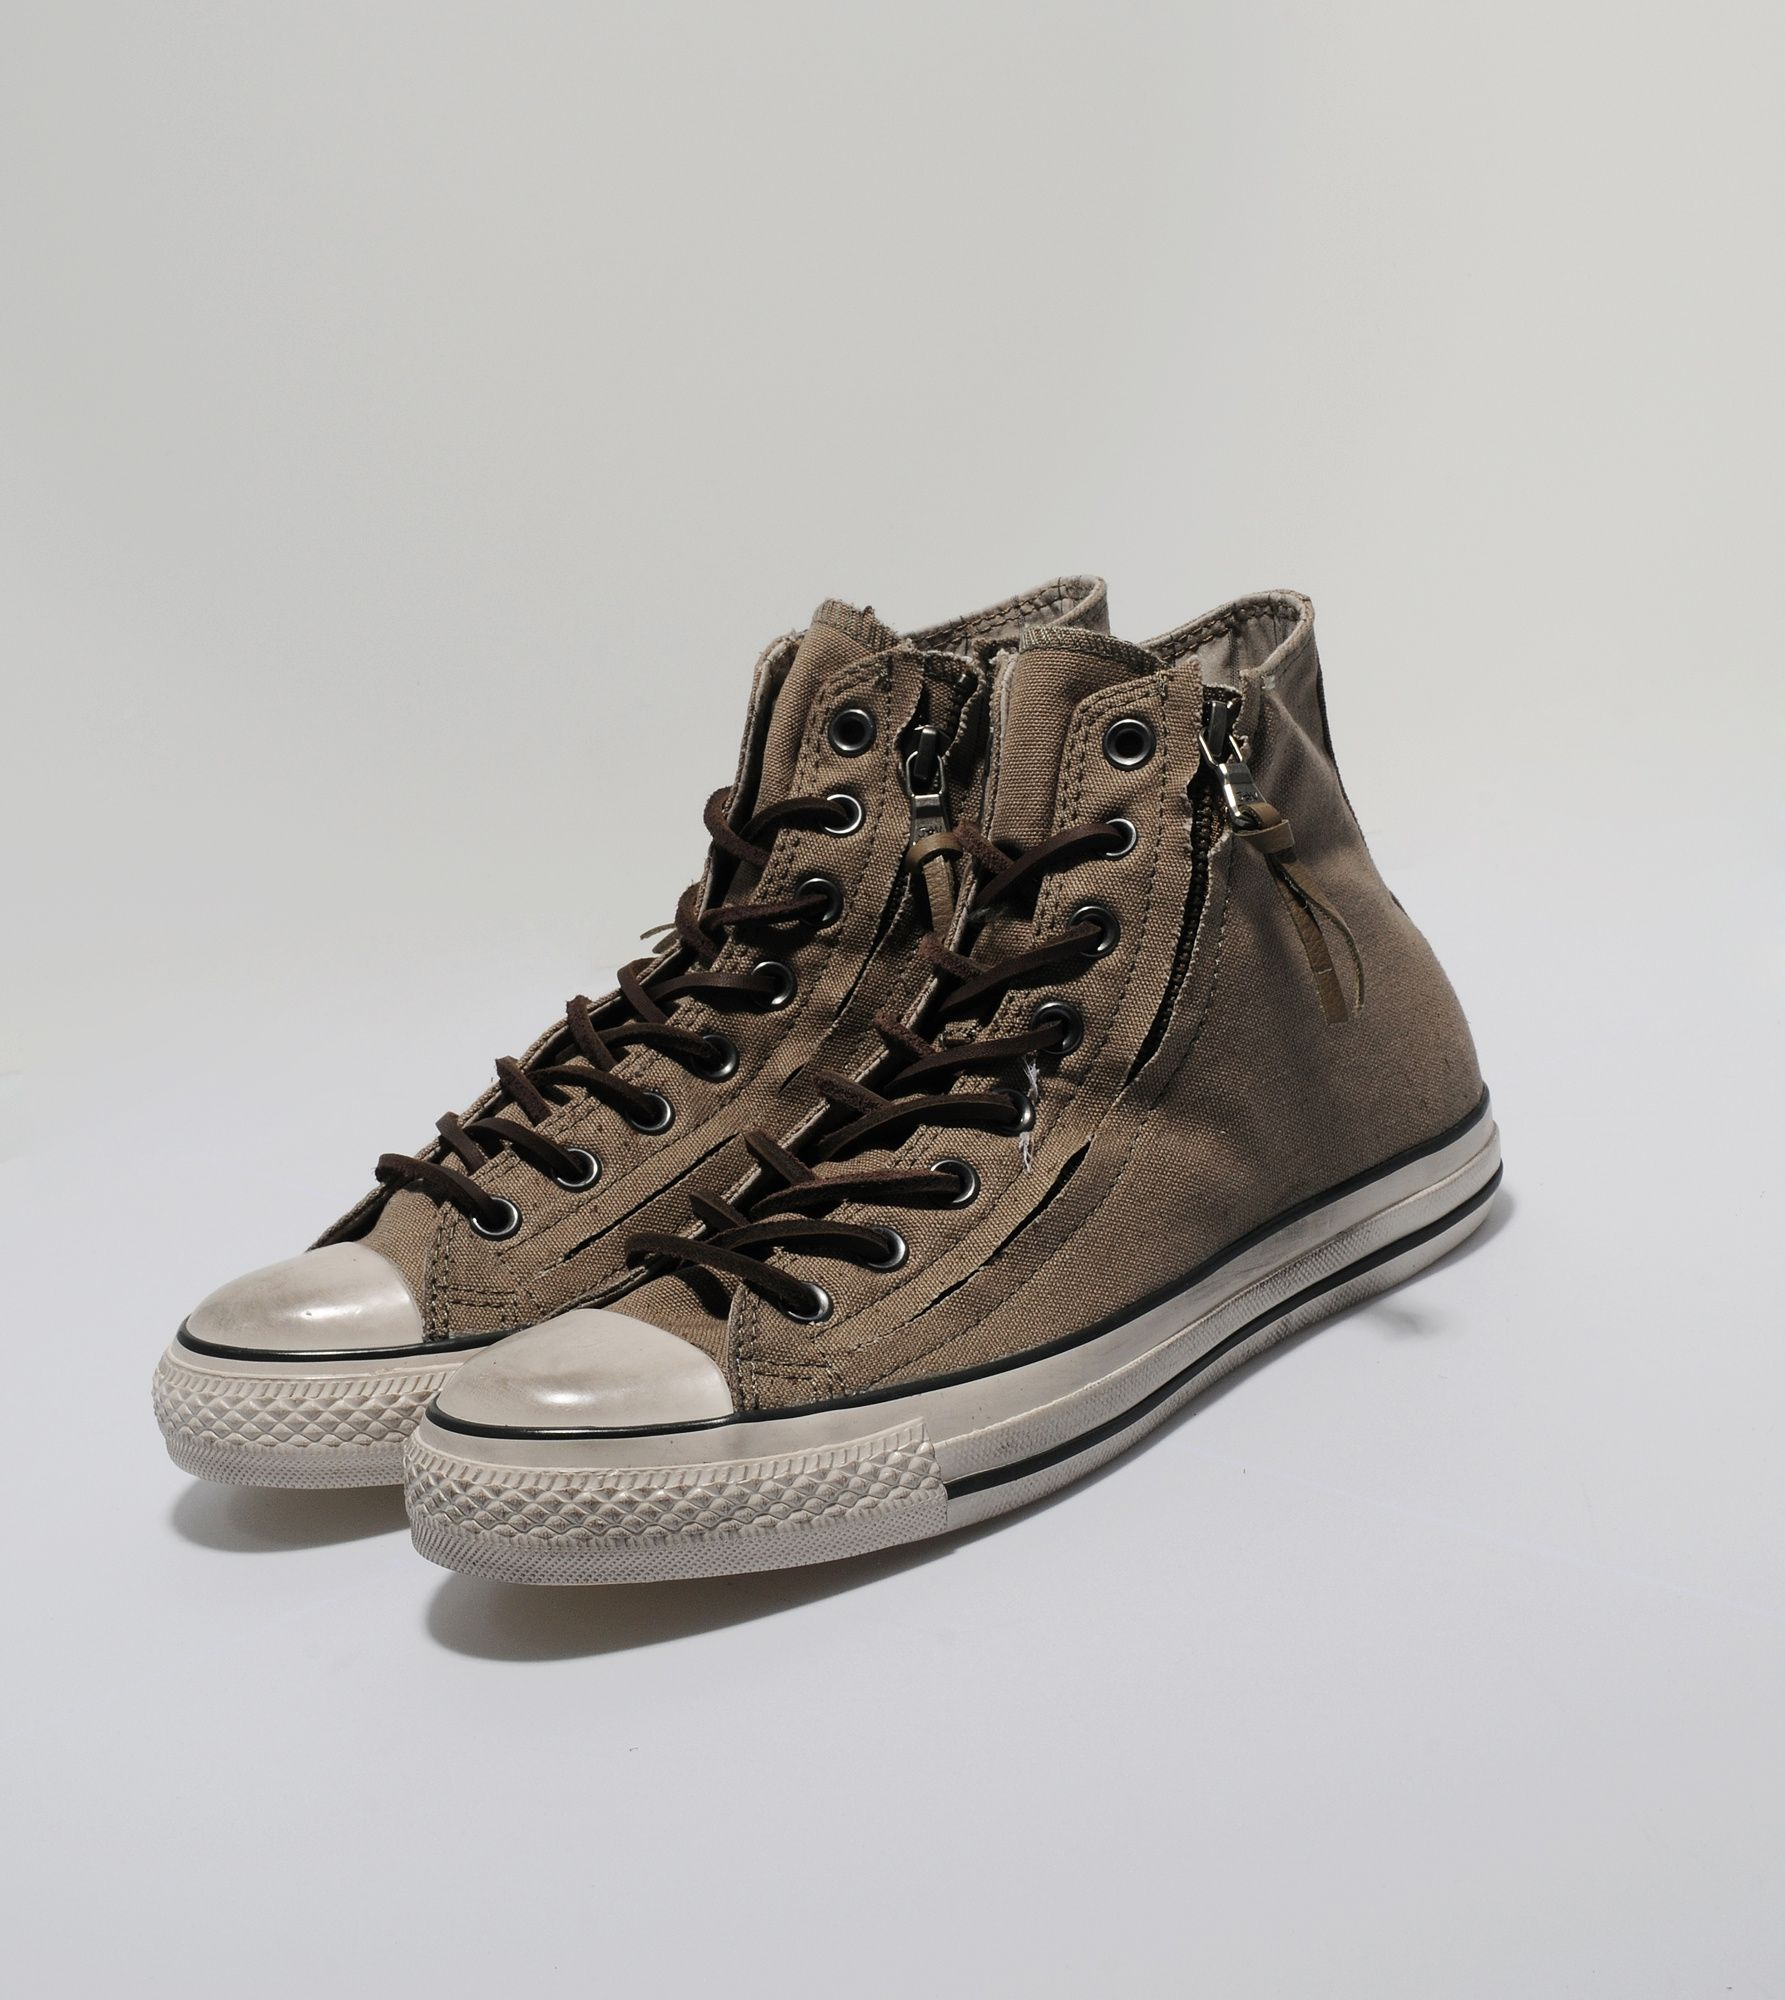 6236a29a0c84 hot all star embossed chuck taylor by john varvatos converse 66bdd 3af6c